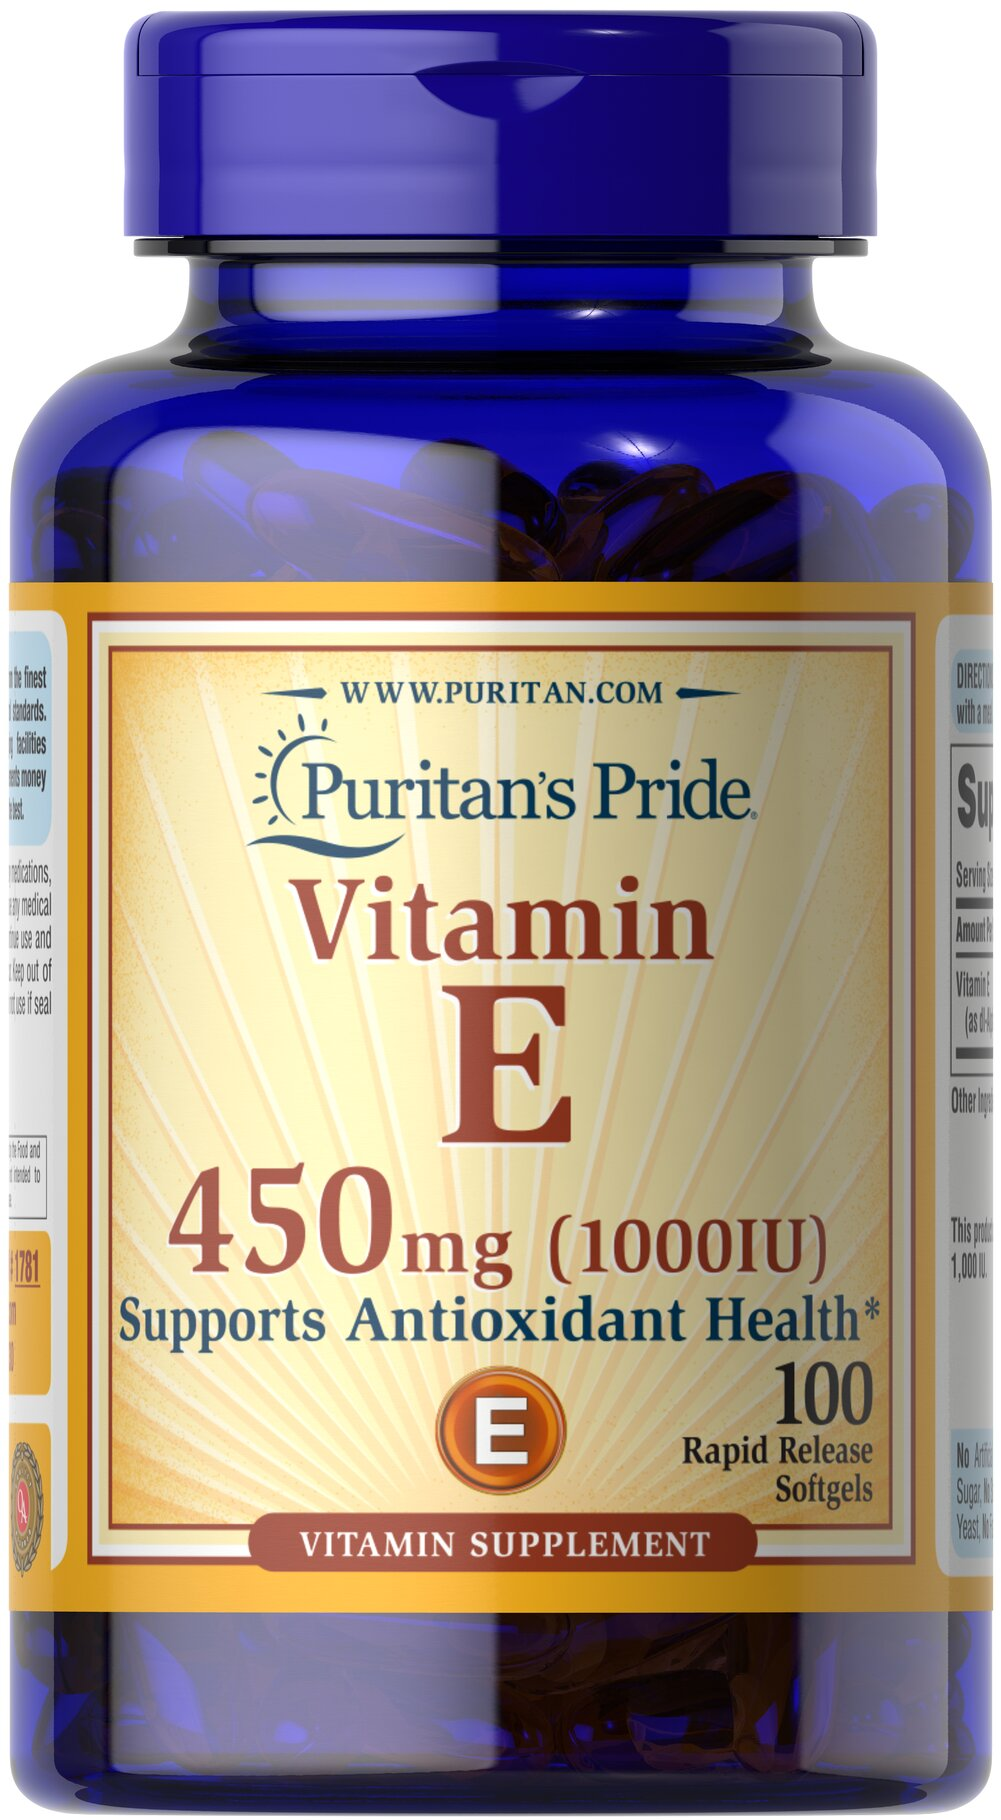 Vitamin E-1000 IU Thumbnail Alternate Bottle View